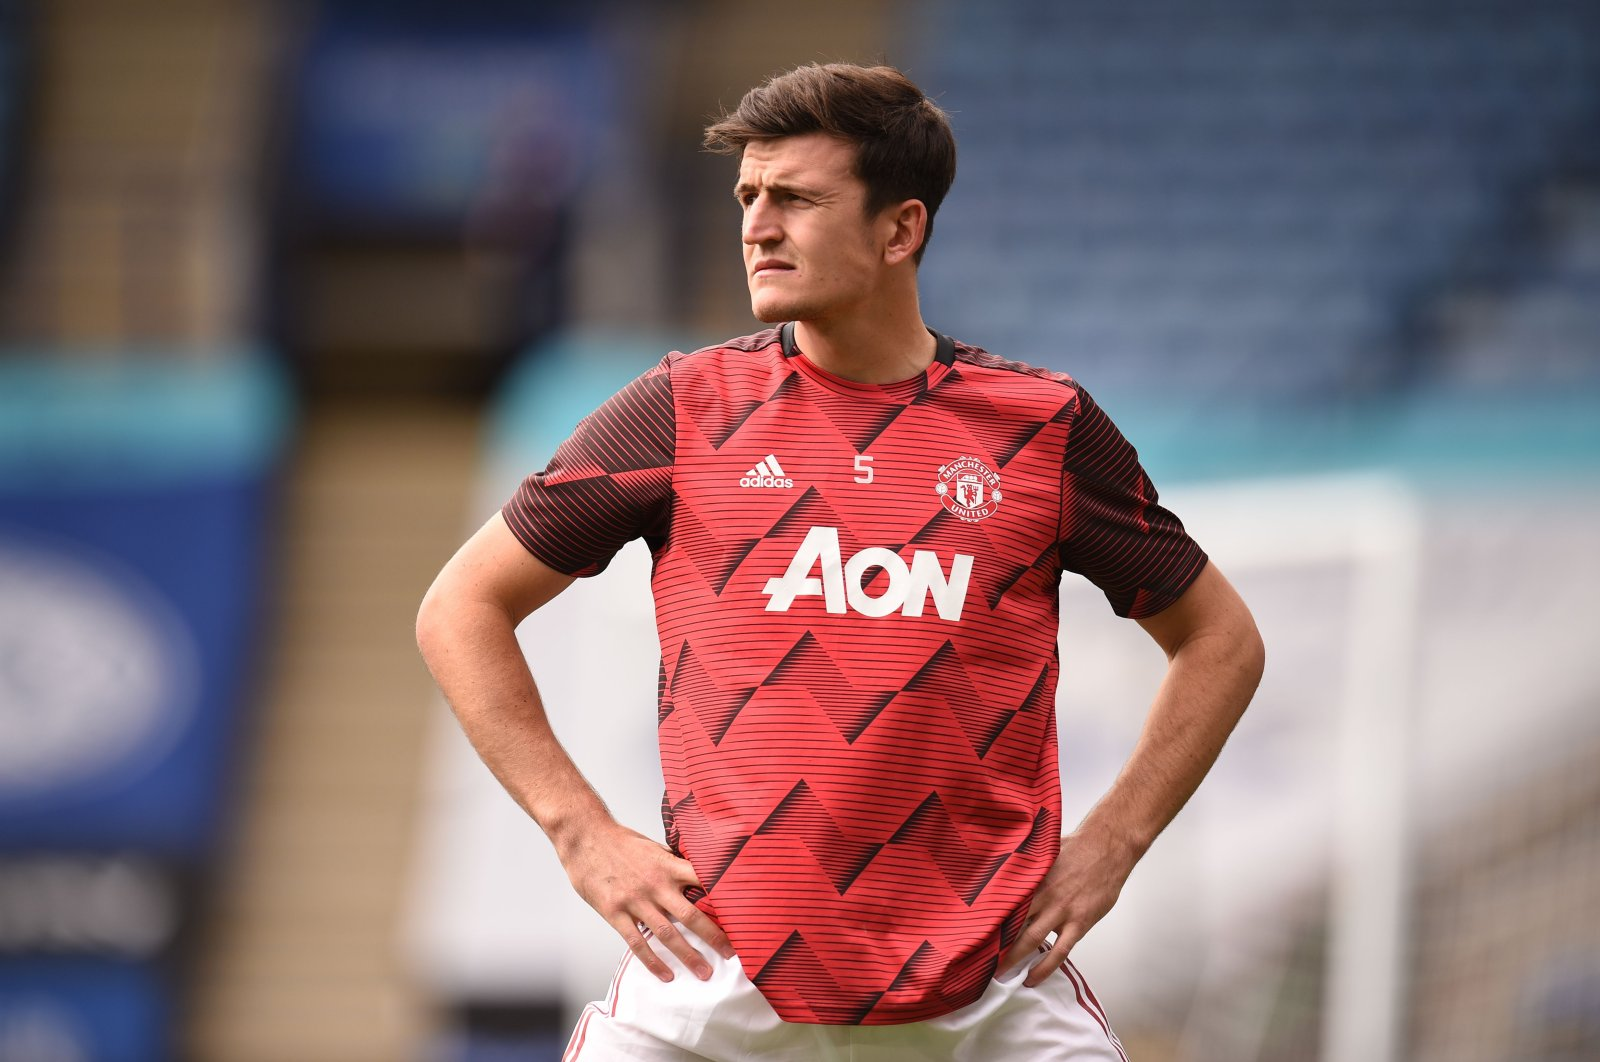 Manchester United's Harry Maguire warms up before a Premier League match against Leicester City in Leicester, England, July 26, 2020. (AFP Photo)